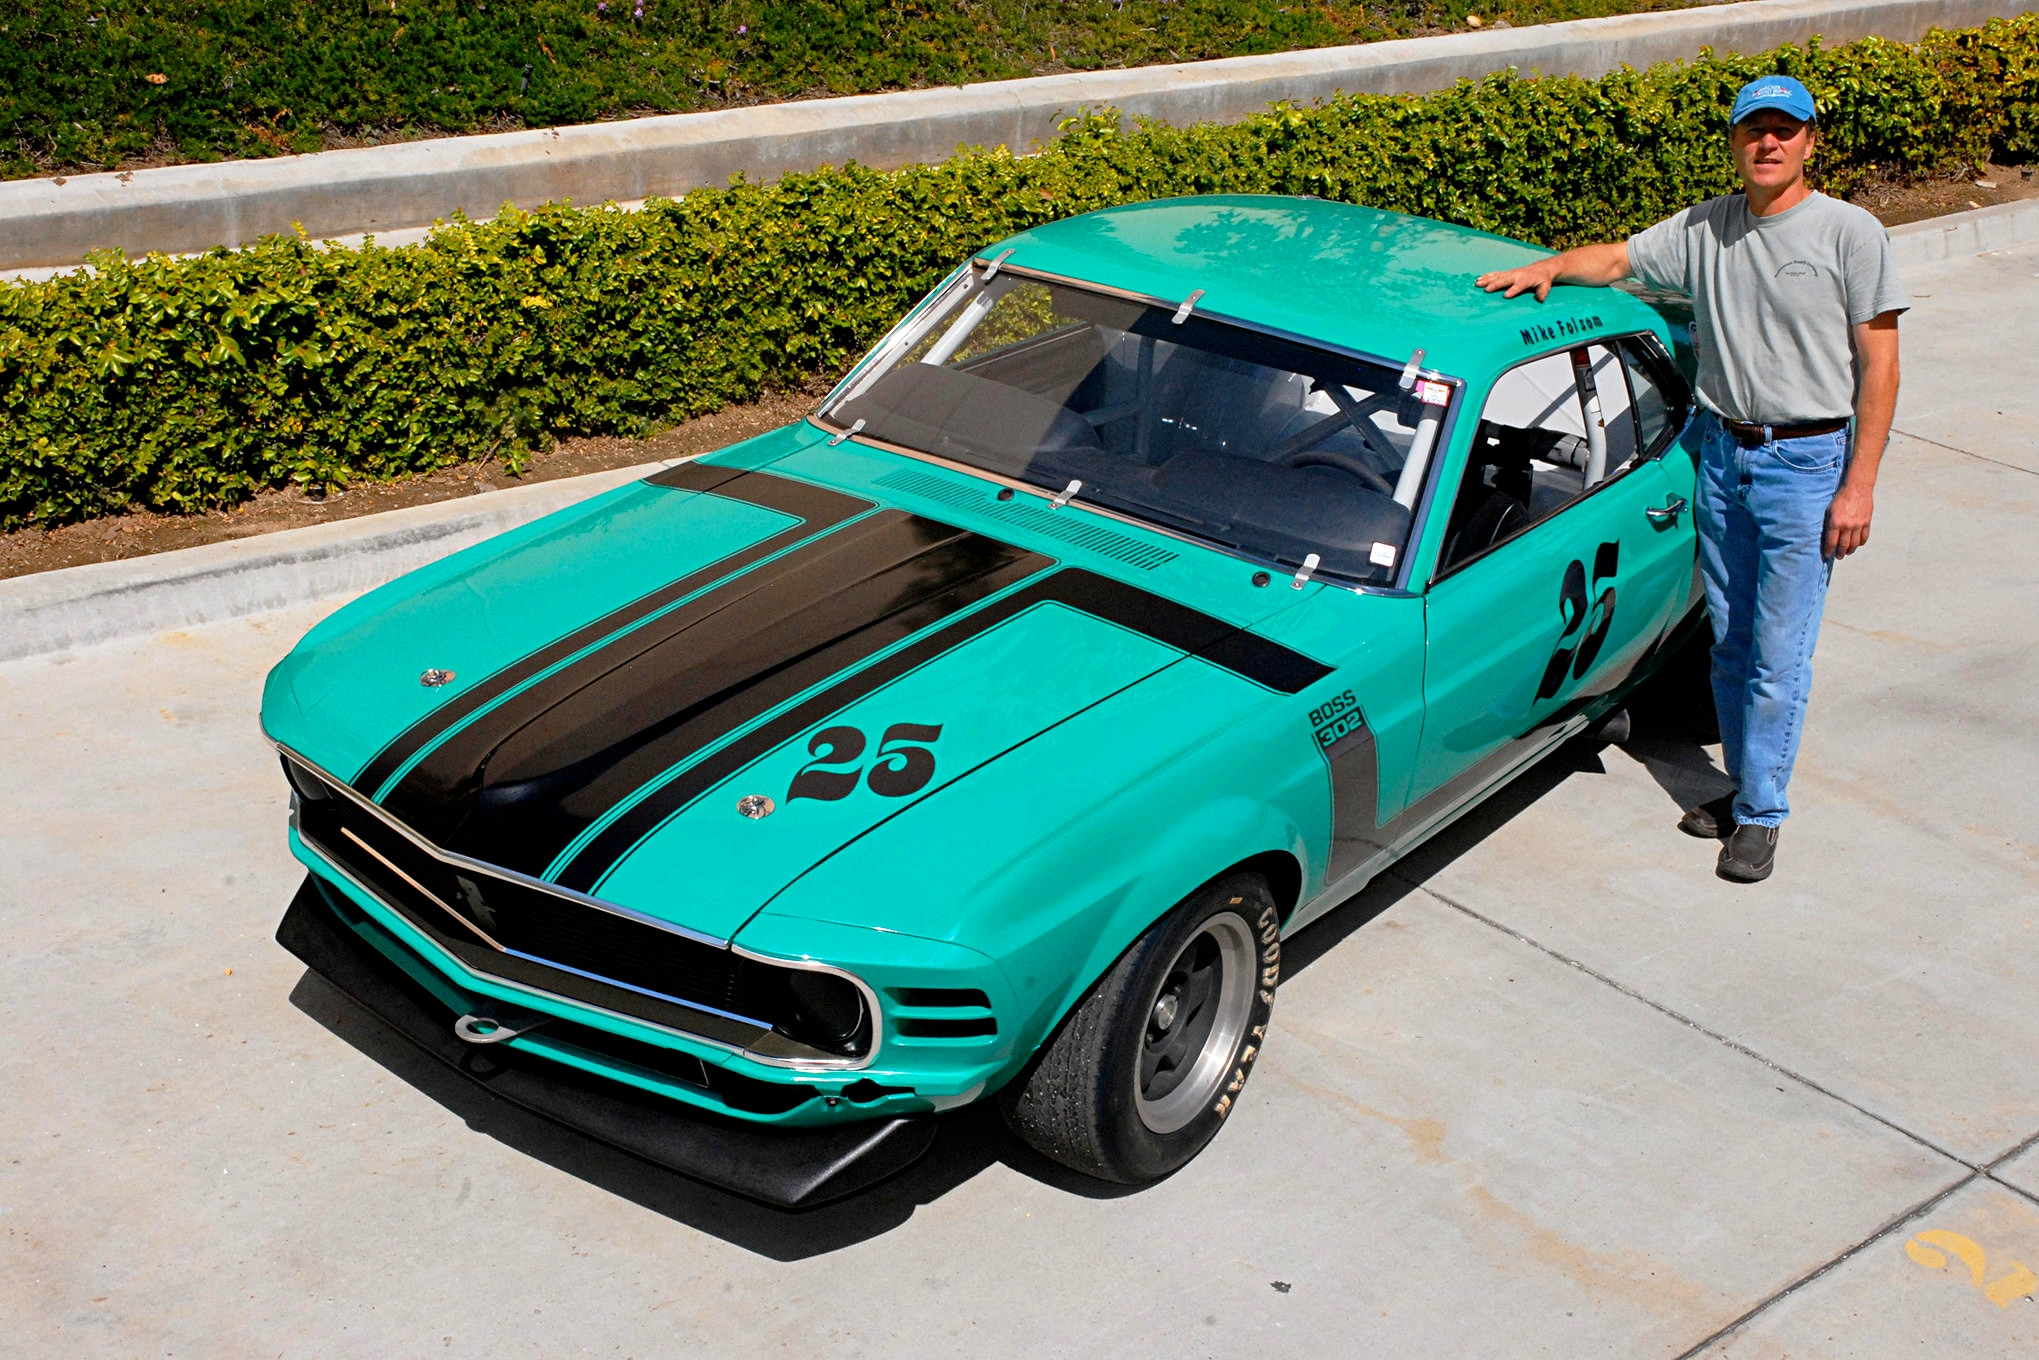 012 Conley 1970 Ford Mustang Boss 302 With Owner